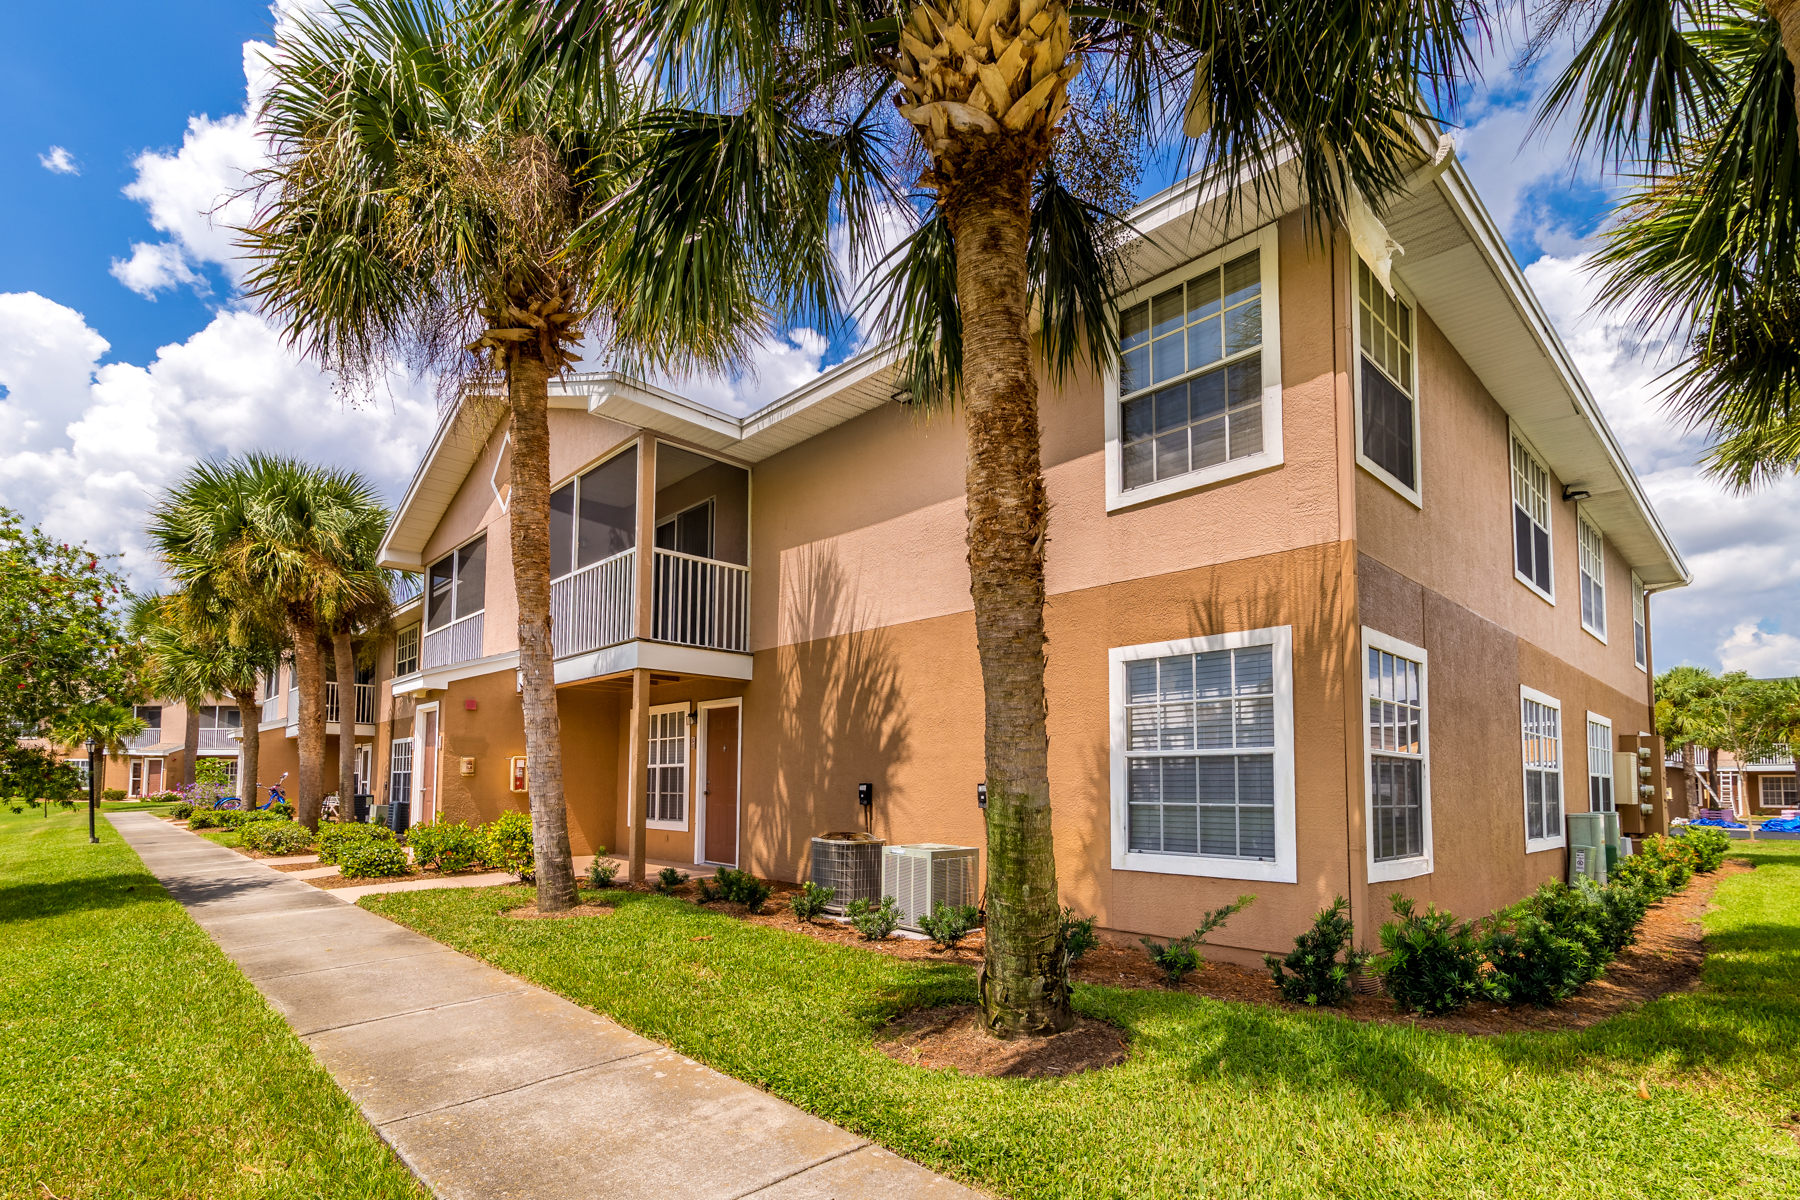 Property for Sale at Charming Villa in Greens at Viera East 1810 Long Iron Drive #324 Rockledge, Florida 32955 United States